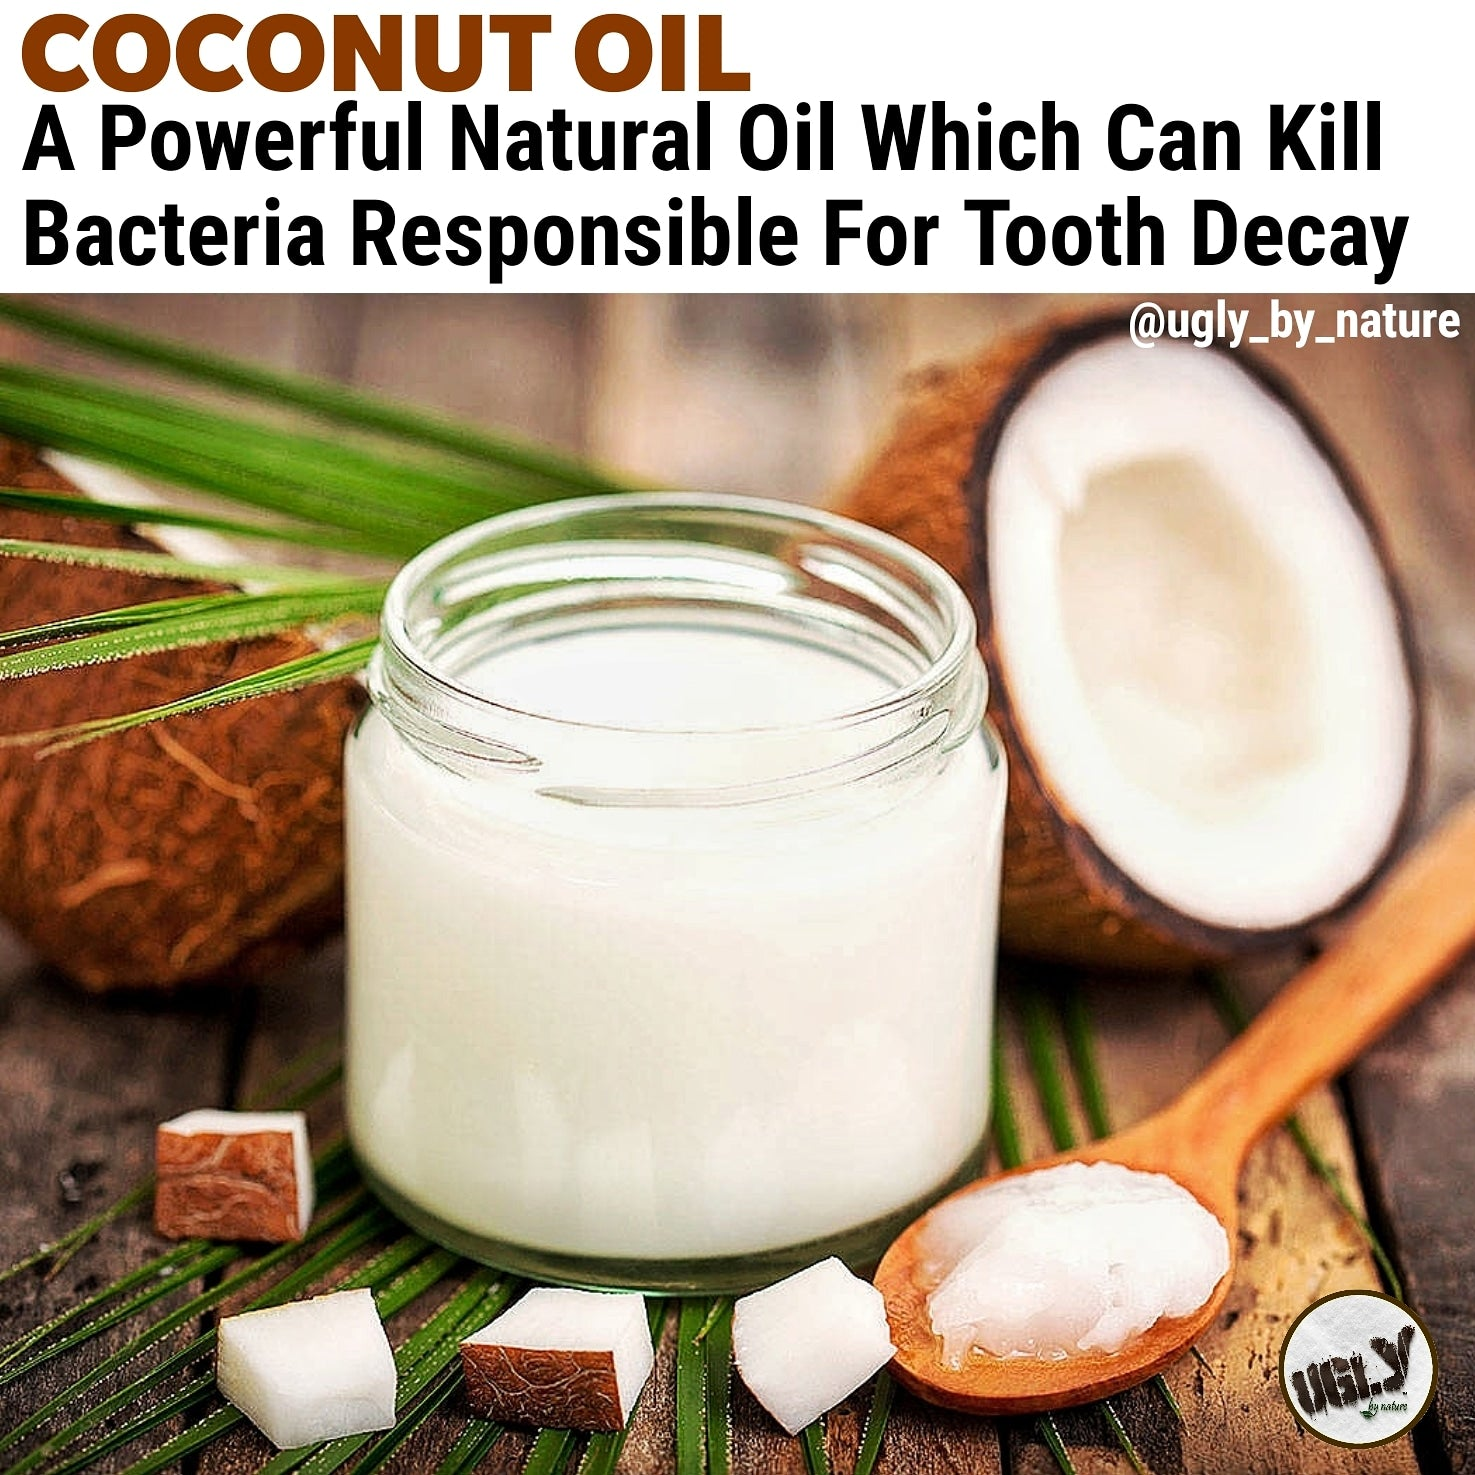 Coconut Oil Kills Bacteria Responsible For Tooth Decay